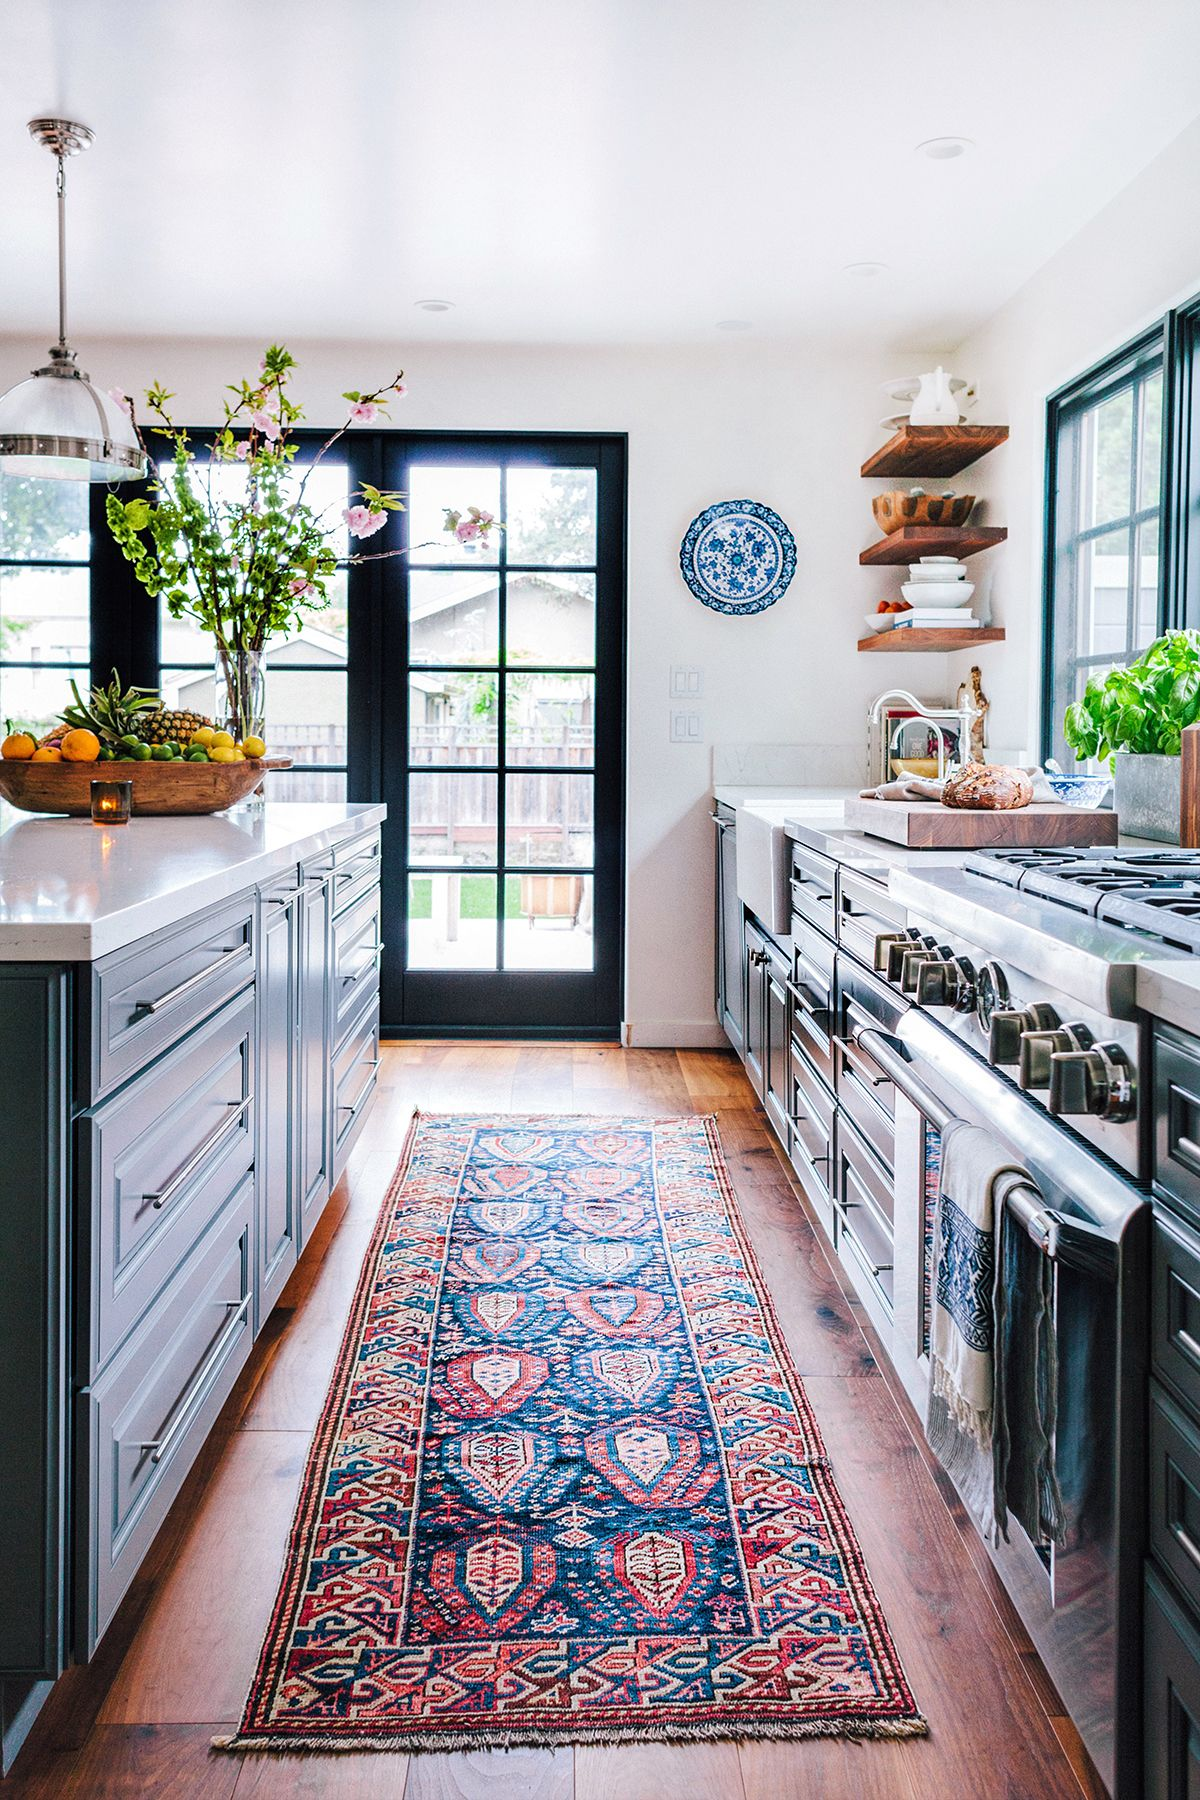 Finding The Right Antique Rug Honestly Wtf Home Home Kitchens Interior Design Kitchen